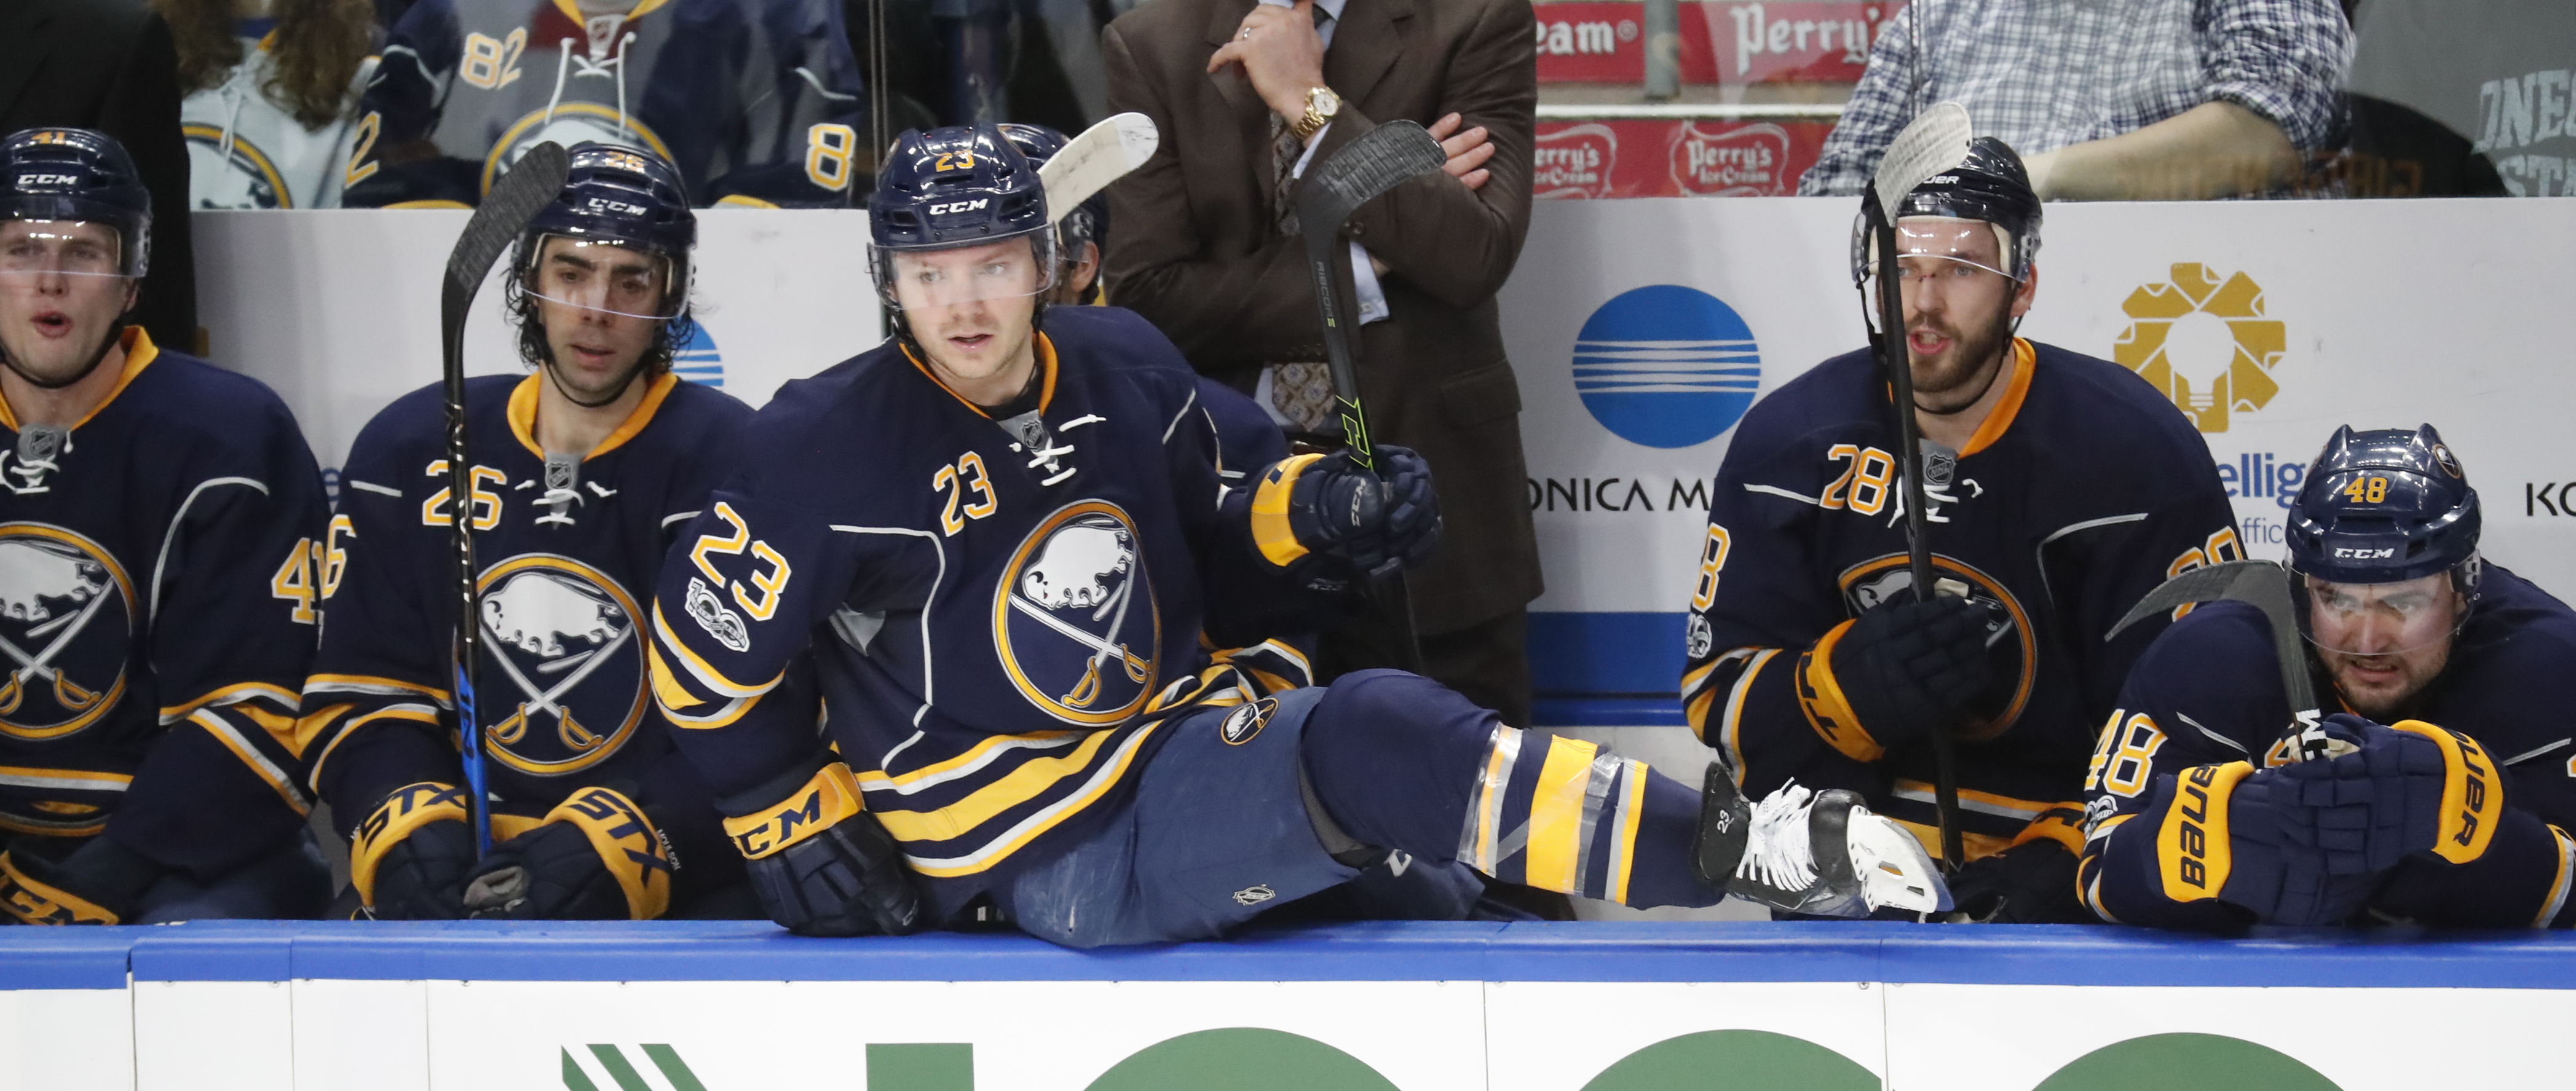 Sam Reinhart, center, has started to produce points for the Sabres after a slow start this season. (Harry Scull Jr./Buffalo News)